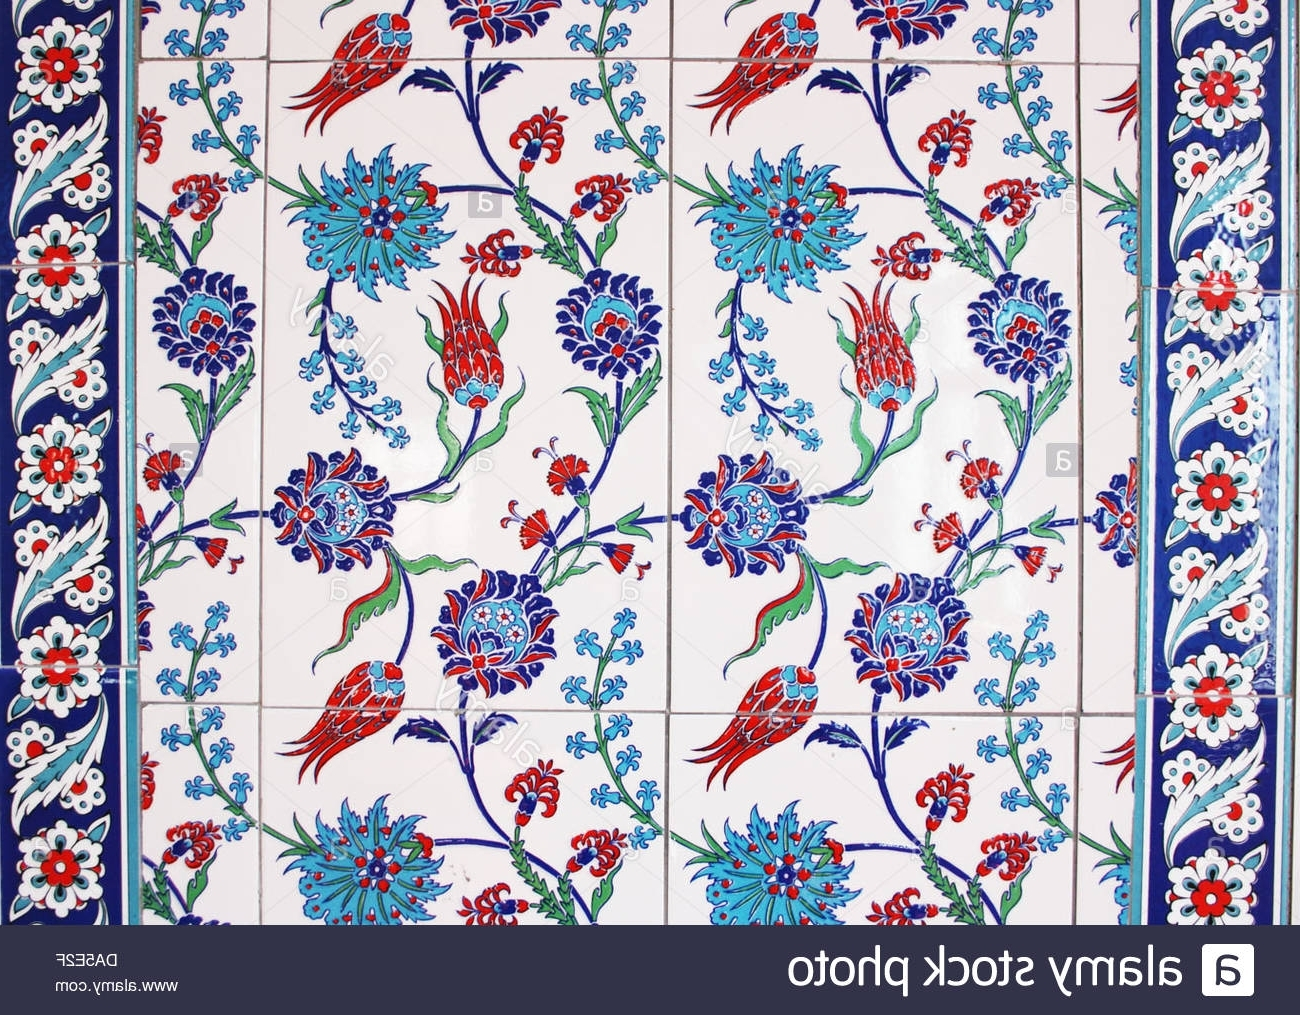 Well Known Turkish Wall Art Intended For Turkish (ottoman) Wall Tiles Stock Photo: 57898471 – Alamy (View 8 of 15)